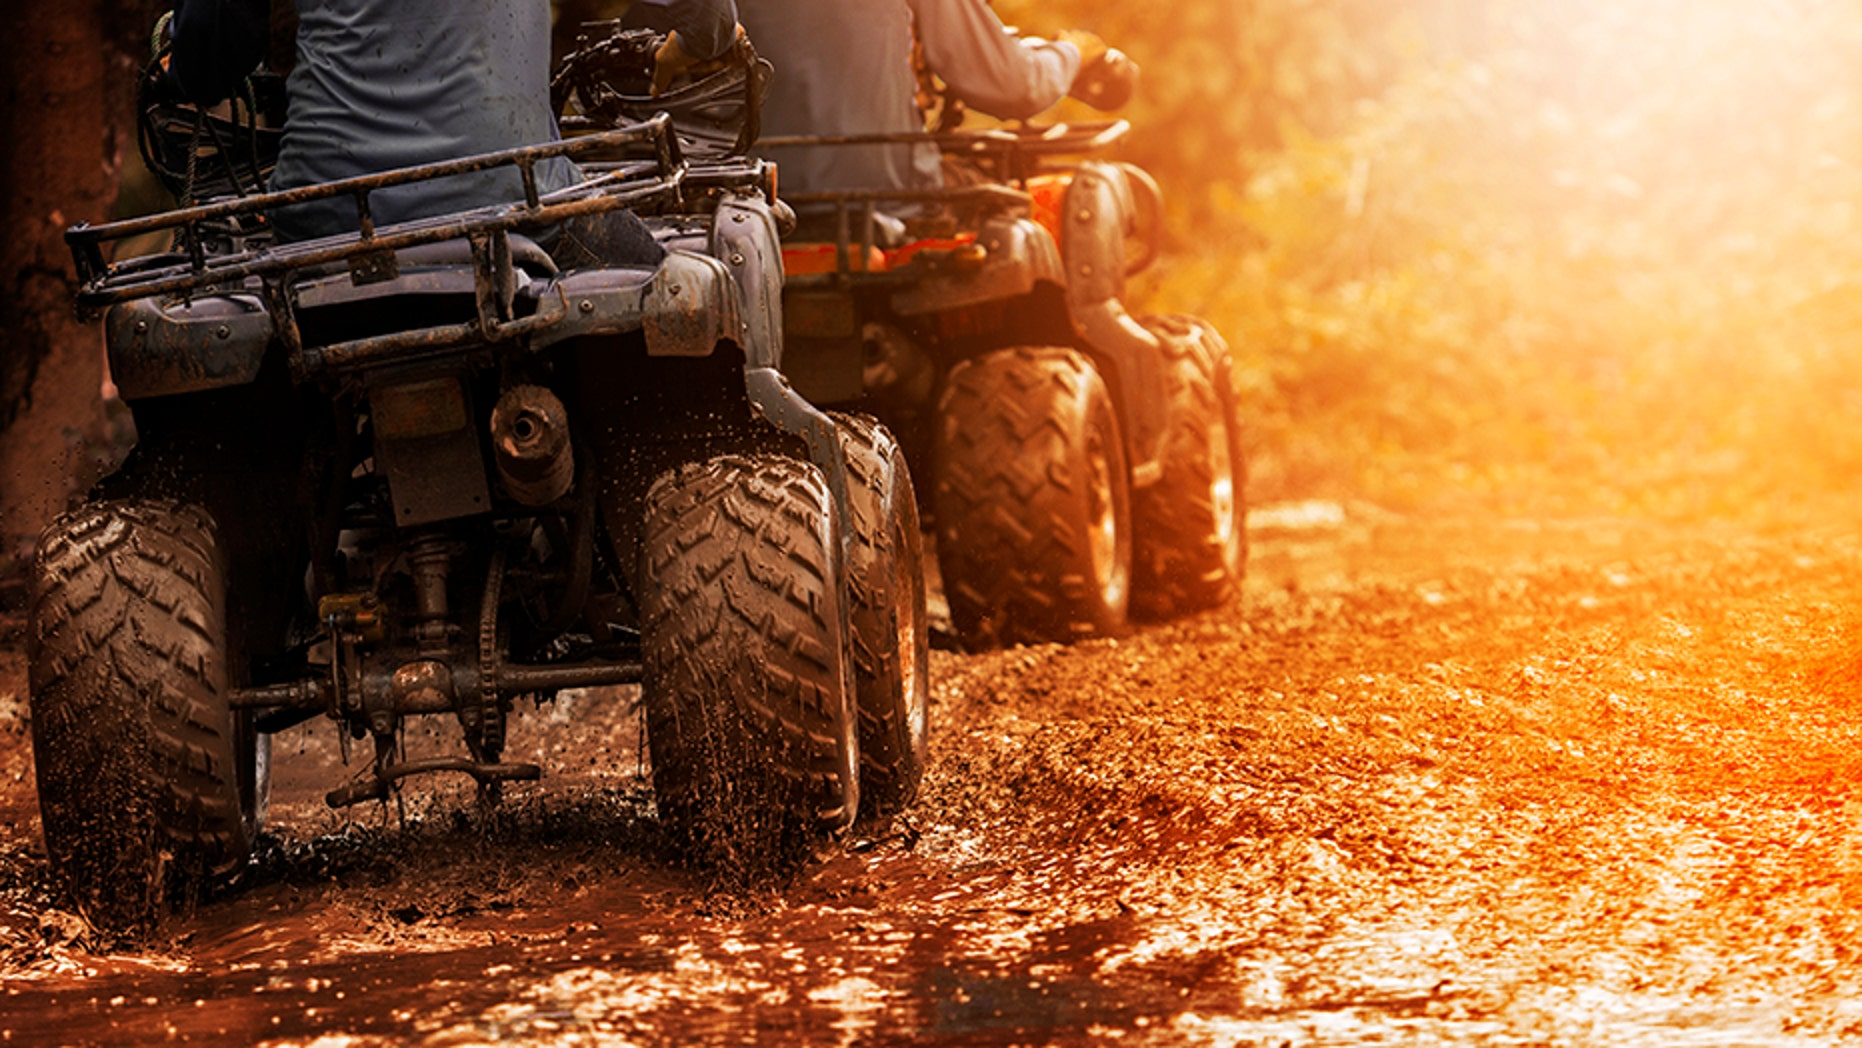 Webster County Sheriff Jim Stubbs was riding his ATV along a U.S. highway.